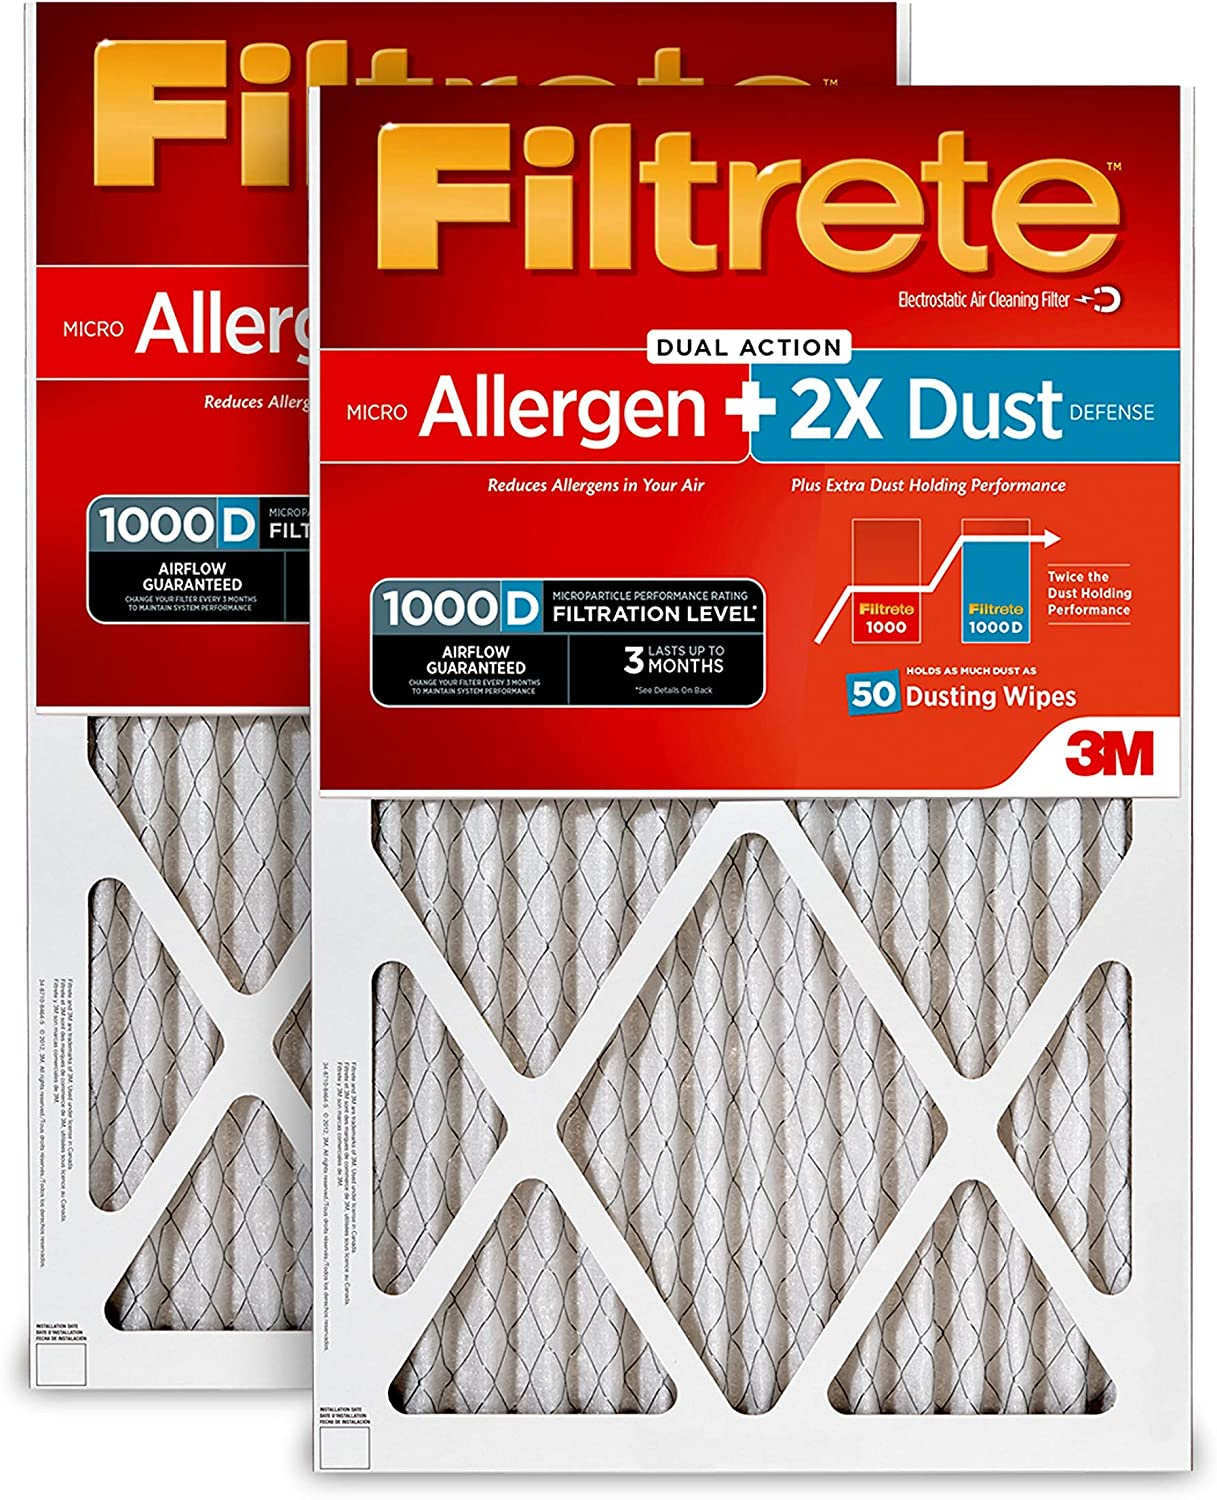 Filtrete MPR 1000 14 x 25 x 1 Micro Allergen Defense HVAC Air Filter 1-Pack